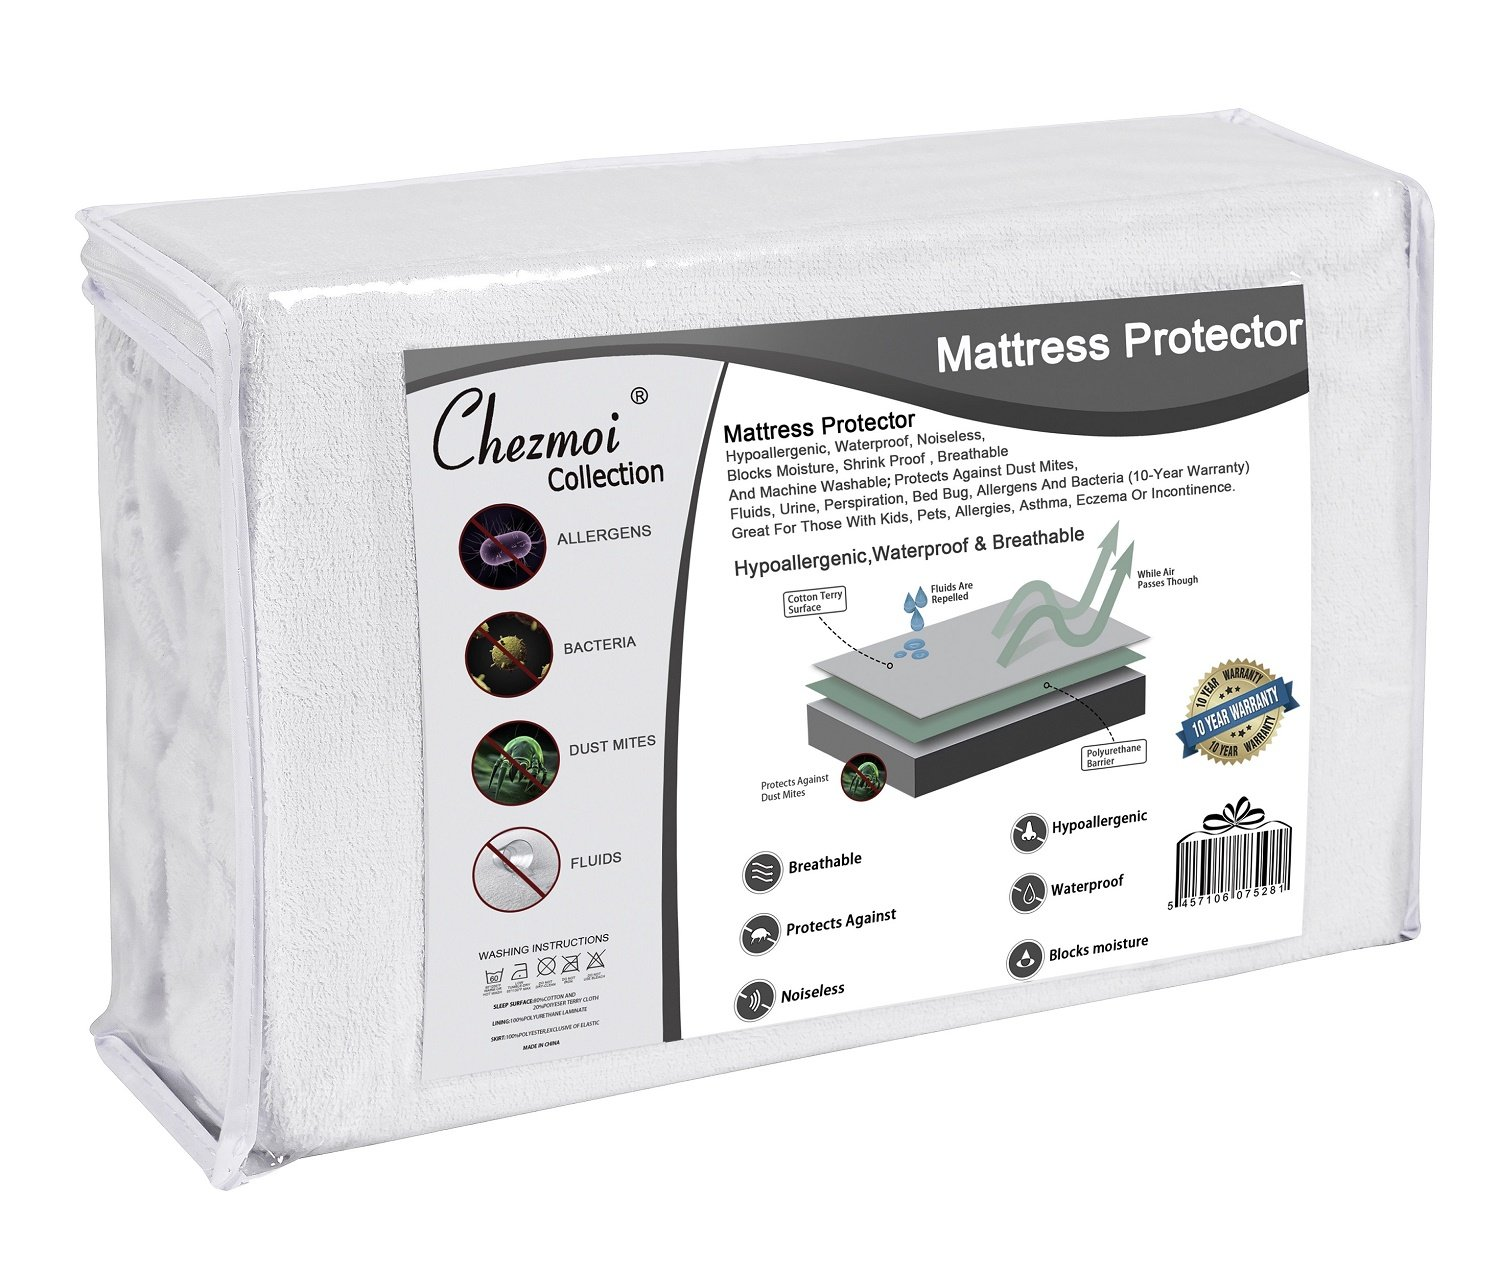 Protects Against Allergens Bacteria Dust Mites /& Fluids Chezmoi Collection Premium Terry Cloth Mattress Protector Mini Crib Hypoallergenic Waterproof Breathable Noiseless